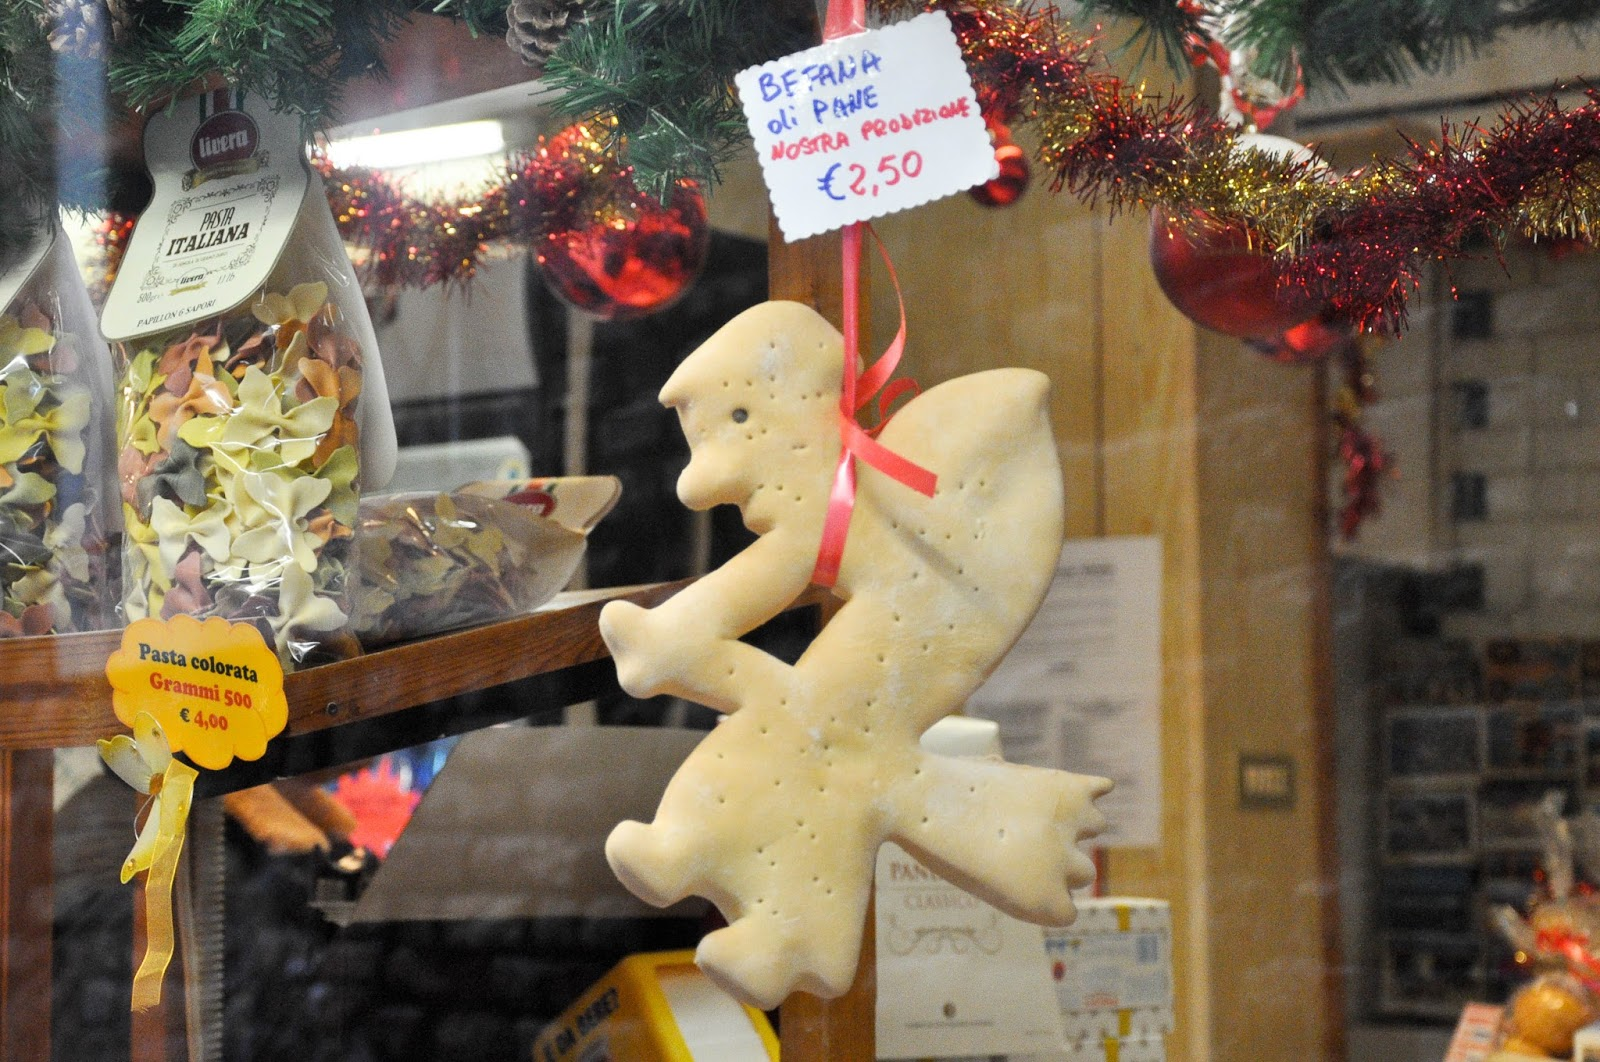 Baked Befana, Bakery shop window, Venice, Italy